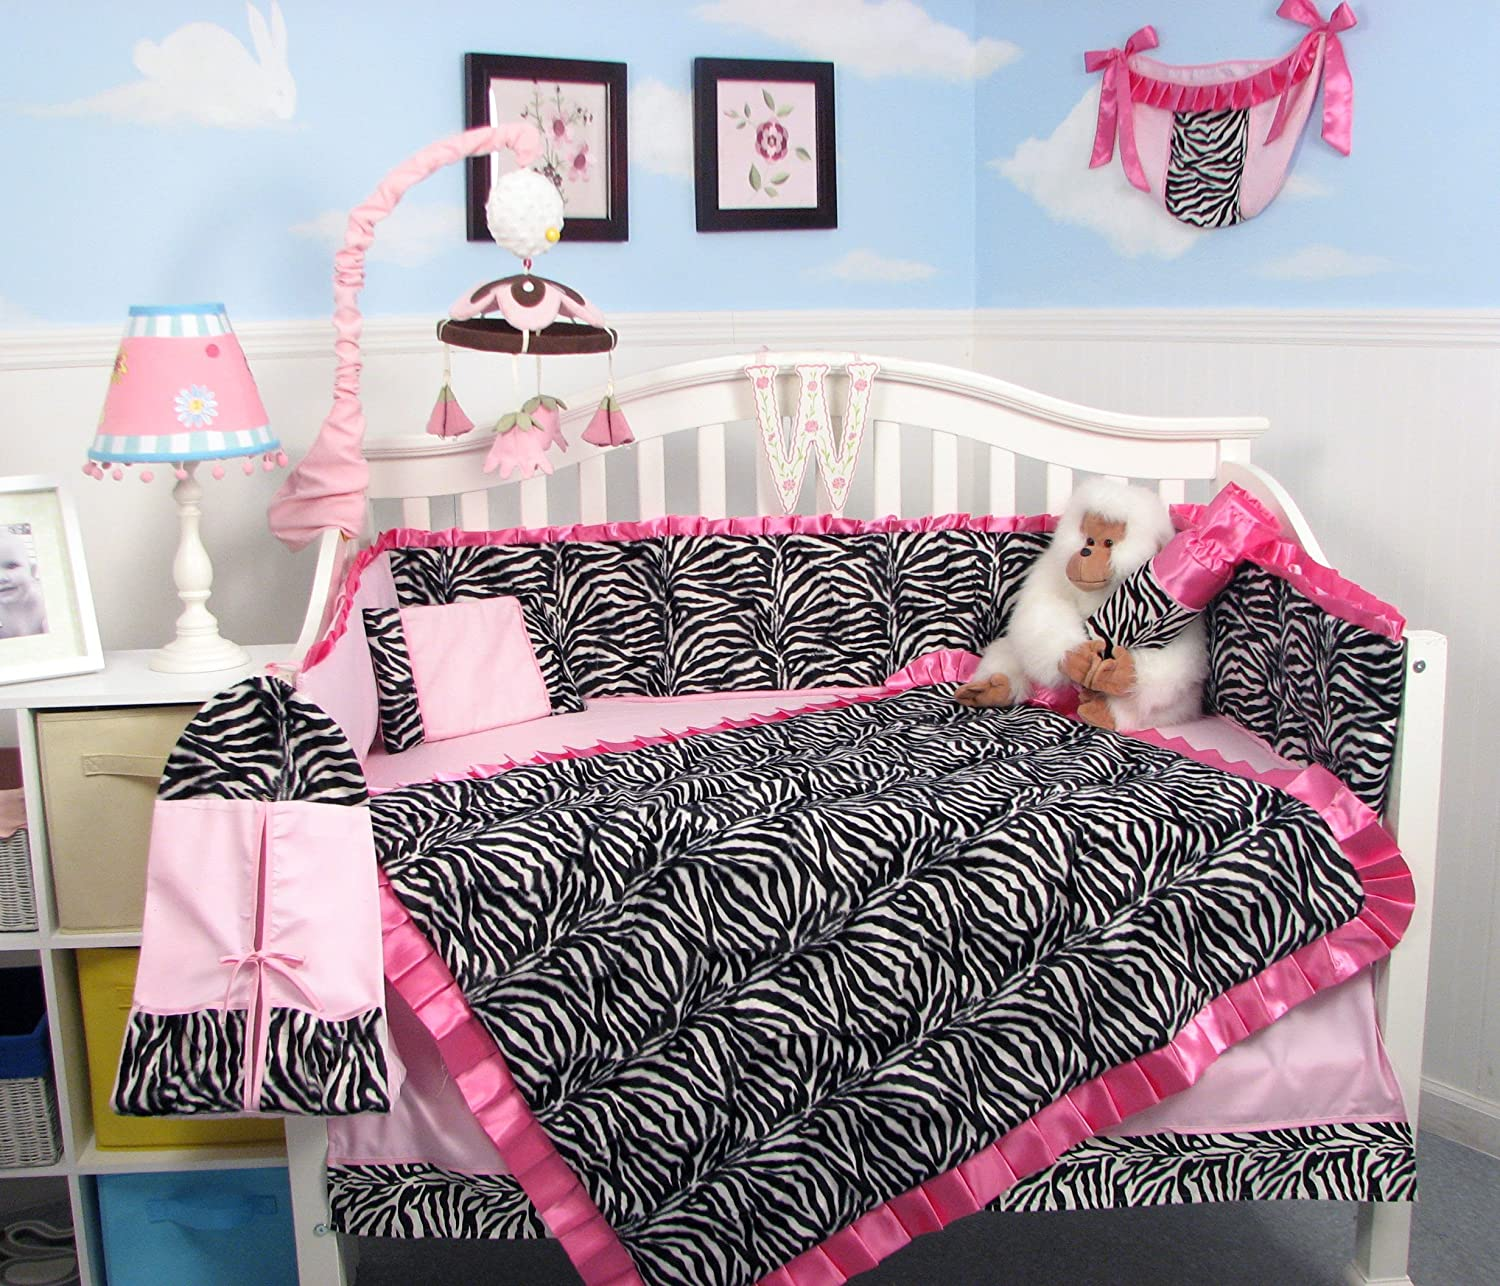 Amazon SoHo Pink With Black White Zebra Chenille Crib Nursery Bedding 10 Pcs Set Toddler Baby